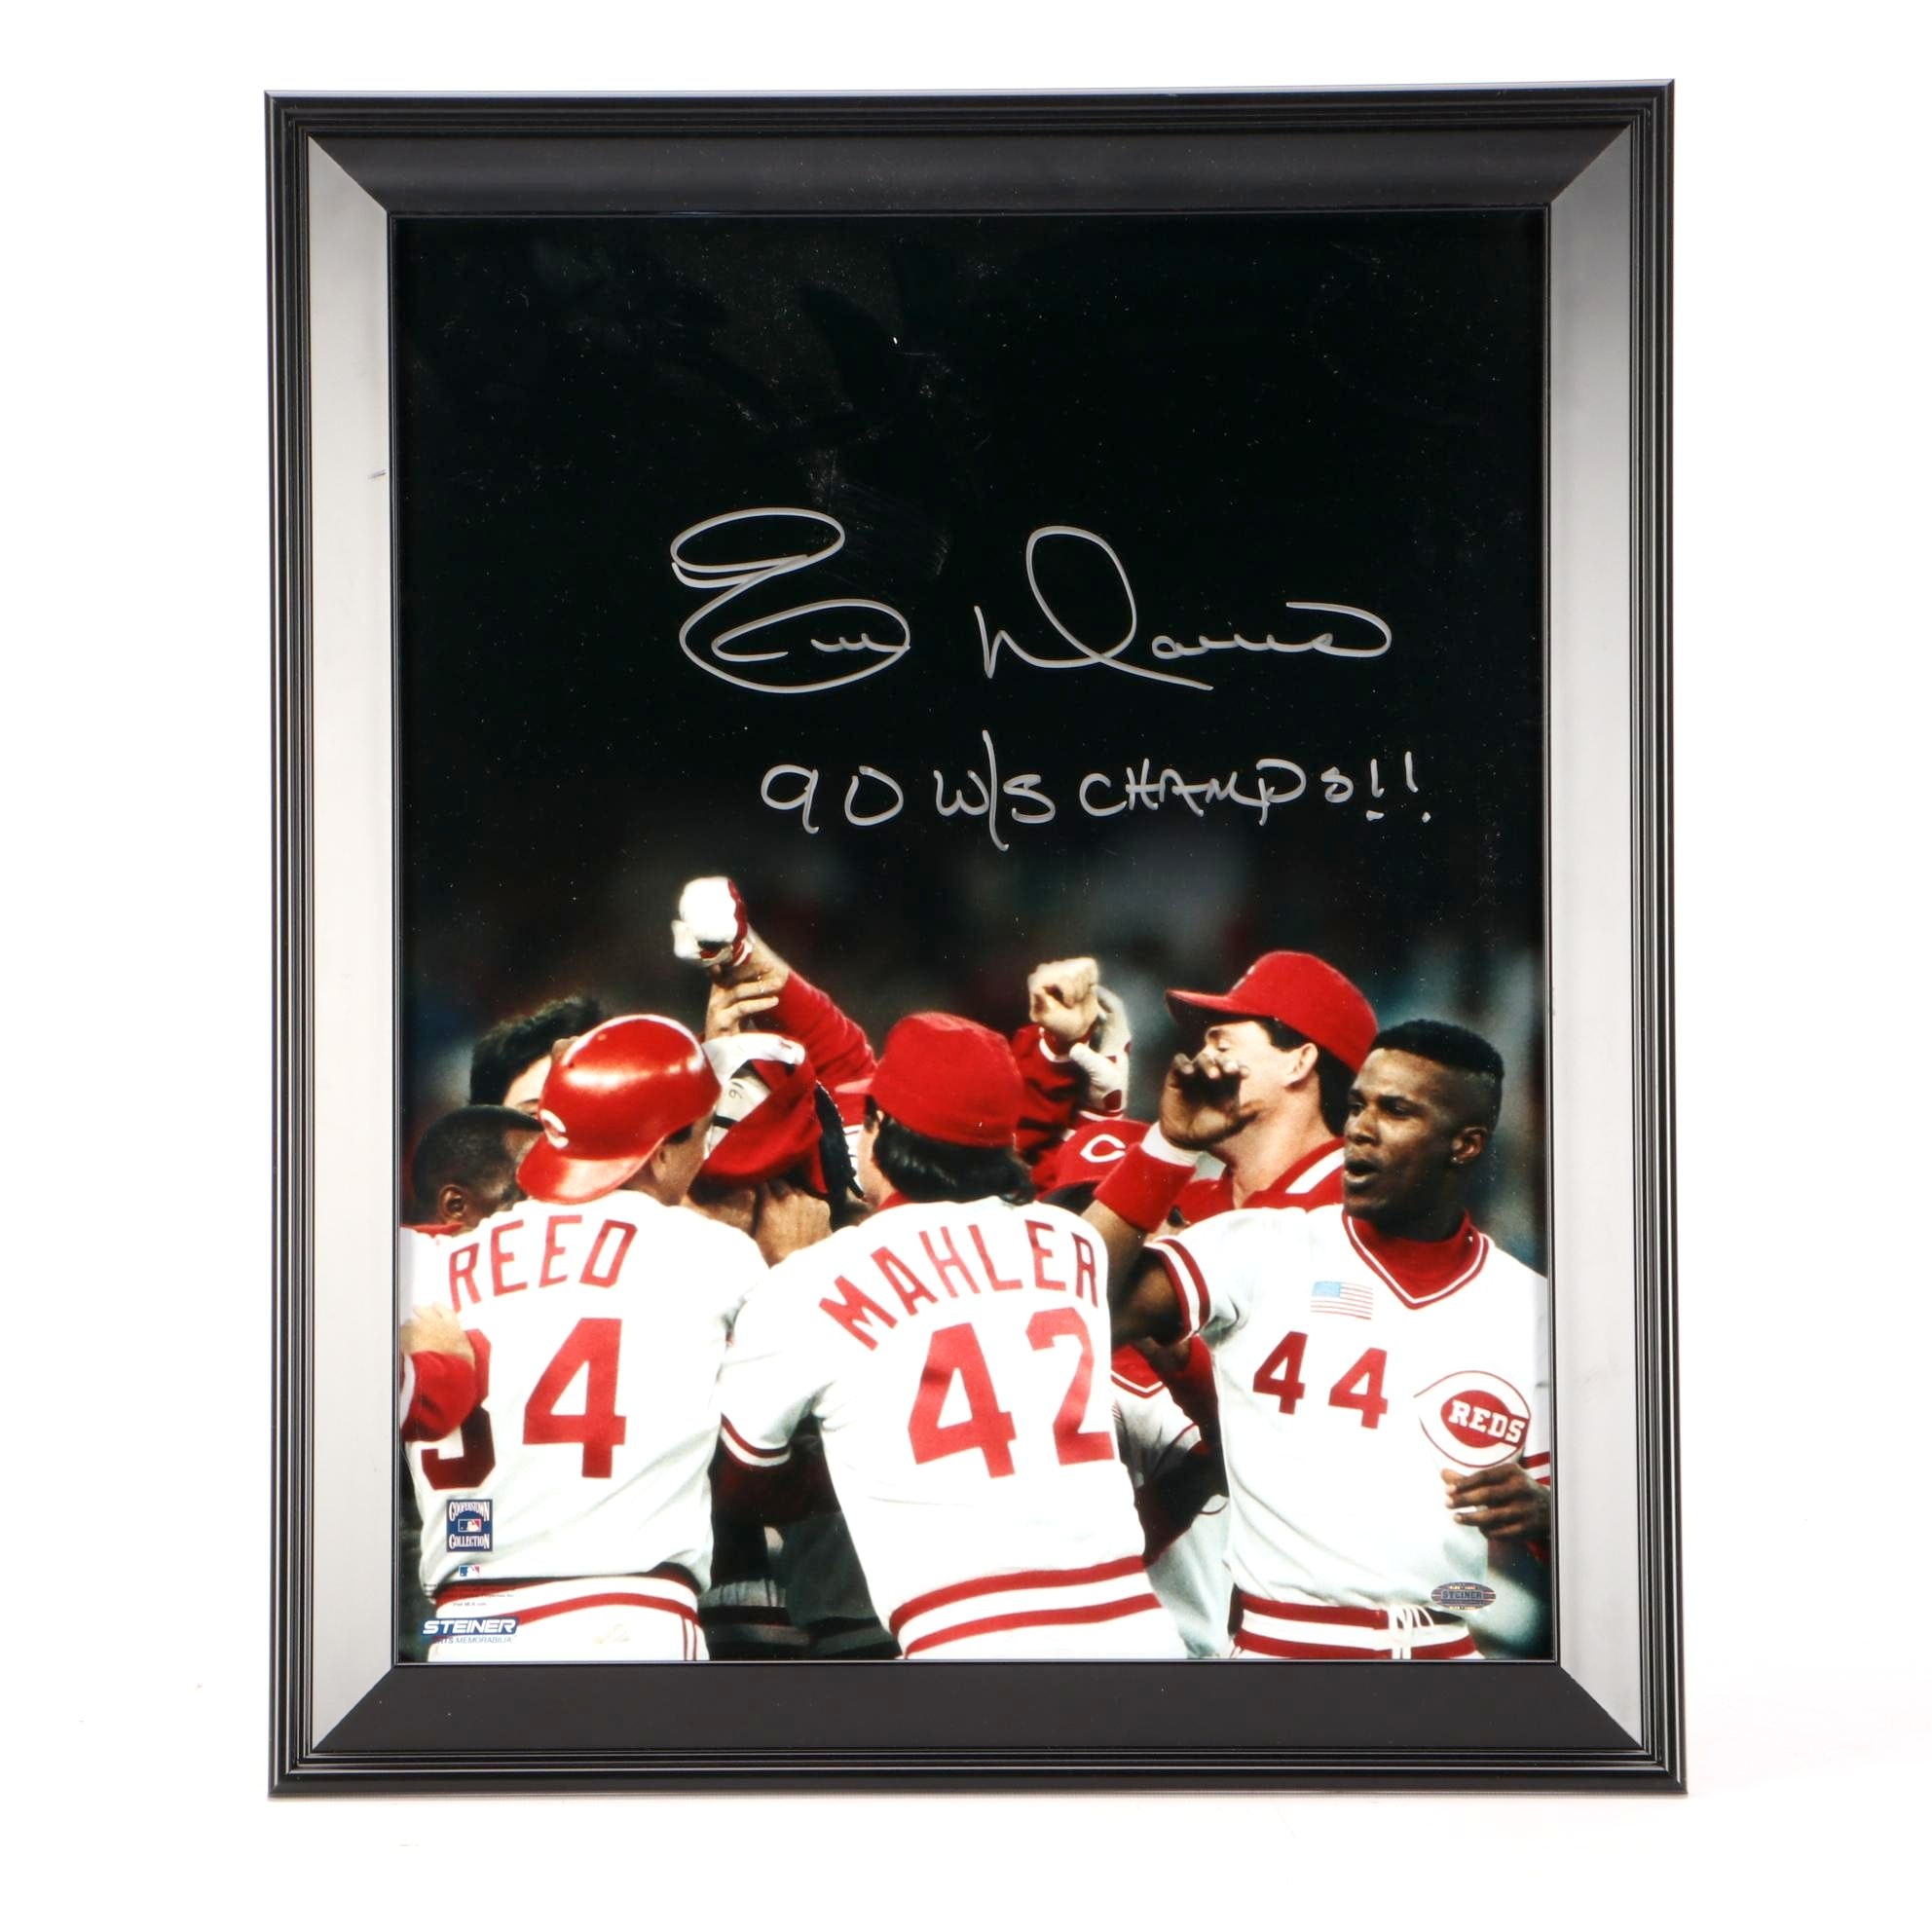 Signed Eric Davis 1990 Cincinnati Reds World Champs Framed Baseball Display